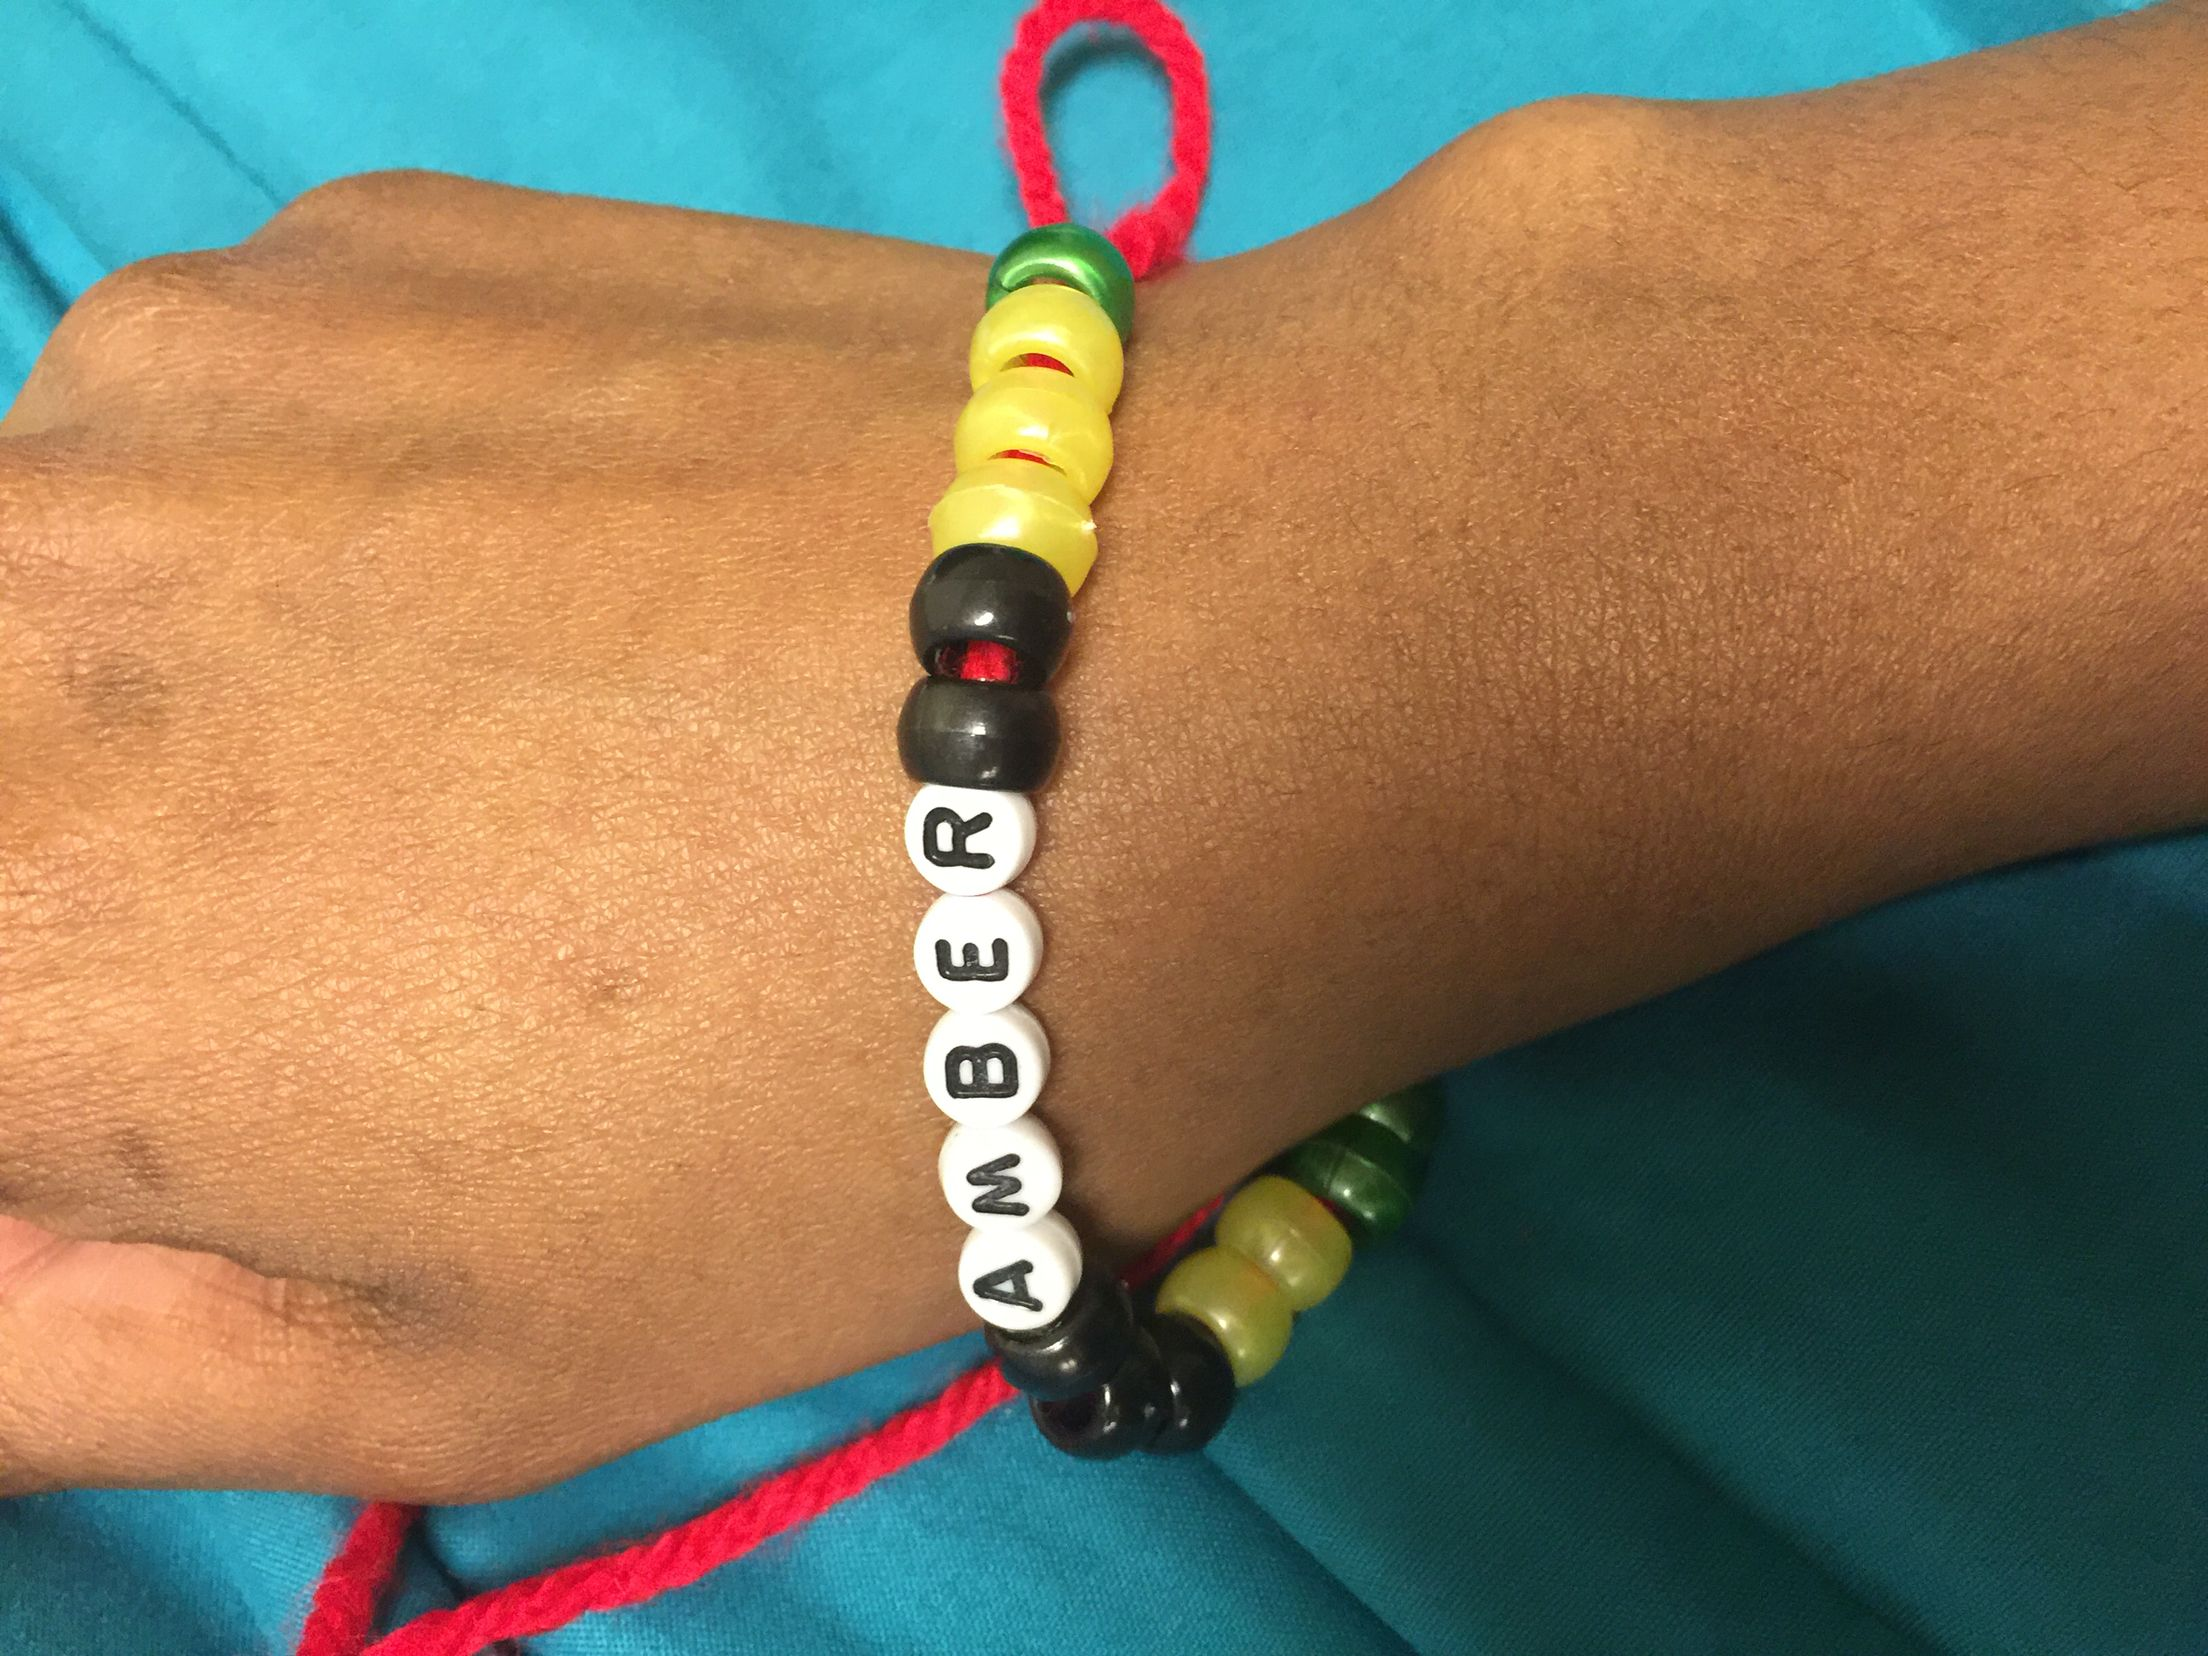 Jamaican friendship bracelet craft..  - I had my client follow the directions to making a friendship bracelet. This week we are learning about the country Jamaica.